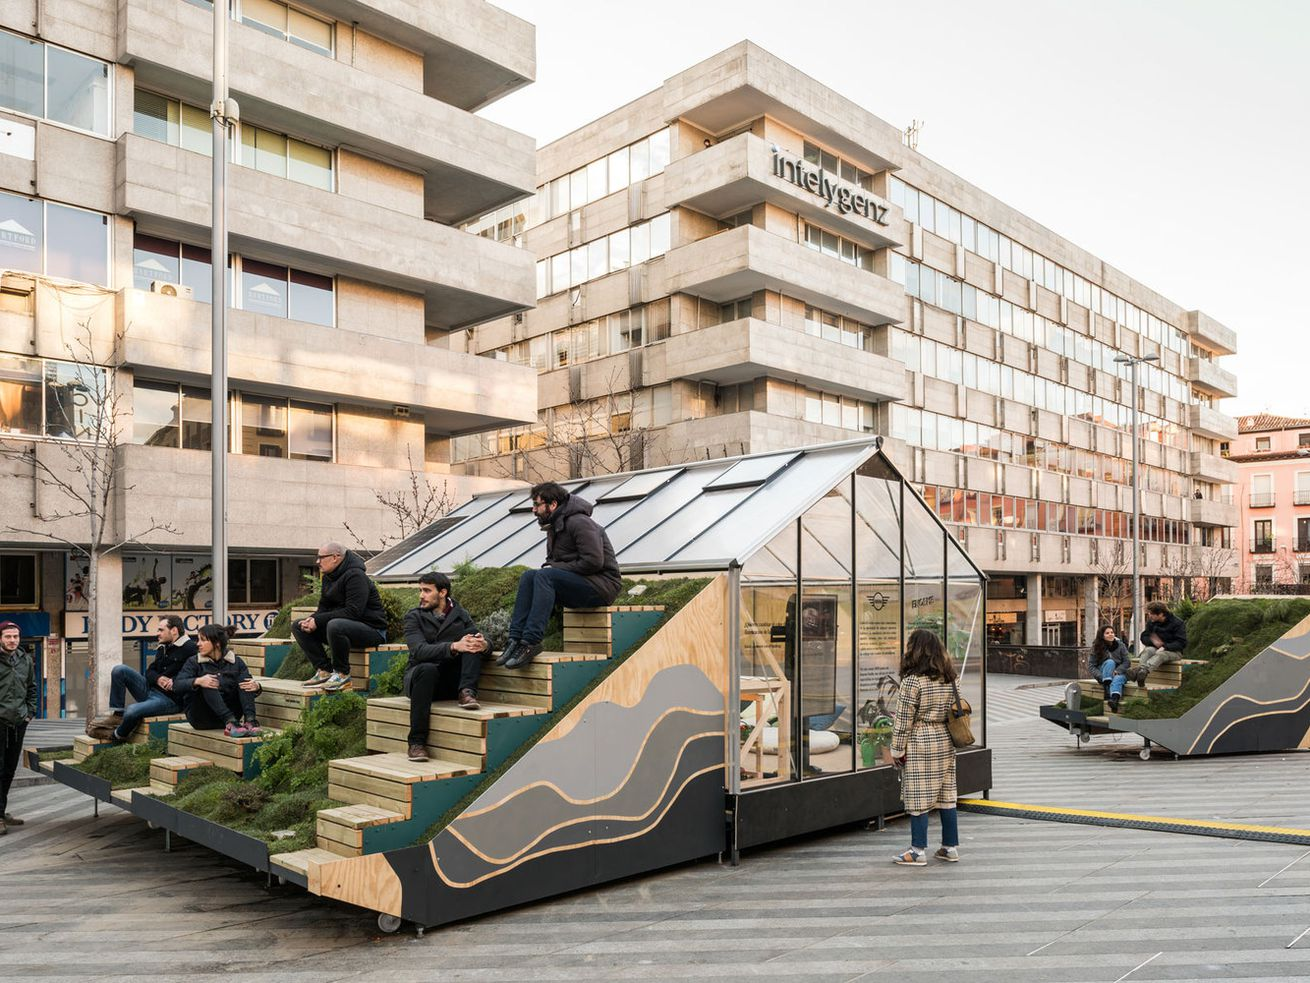 Modular design combines mobile office and street furniture